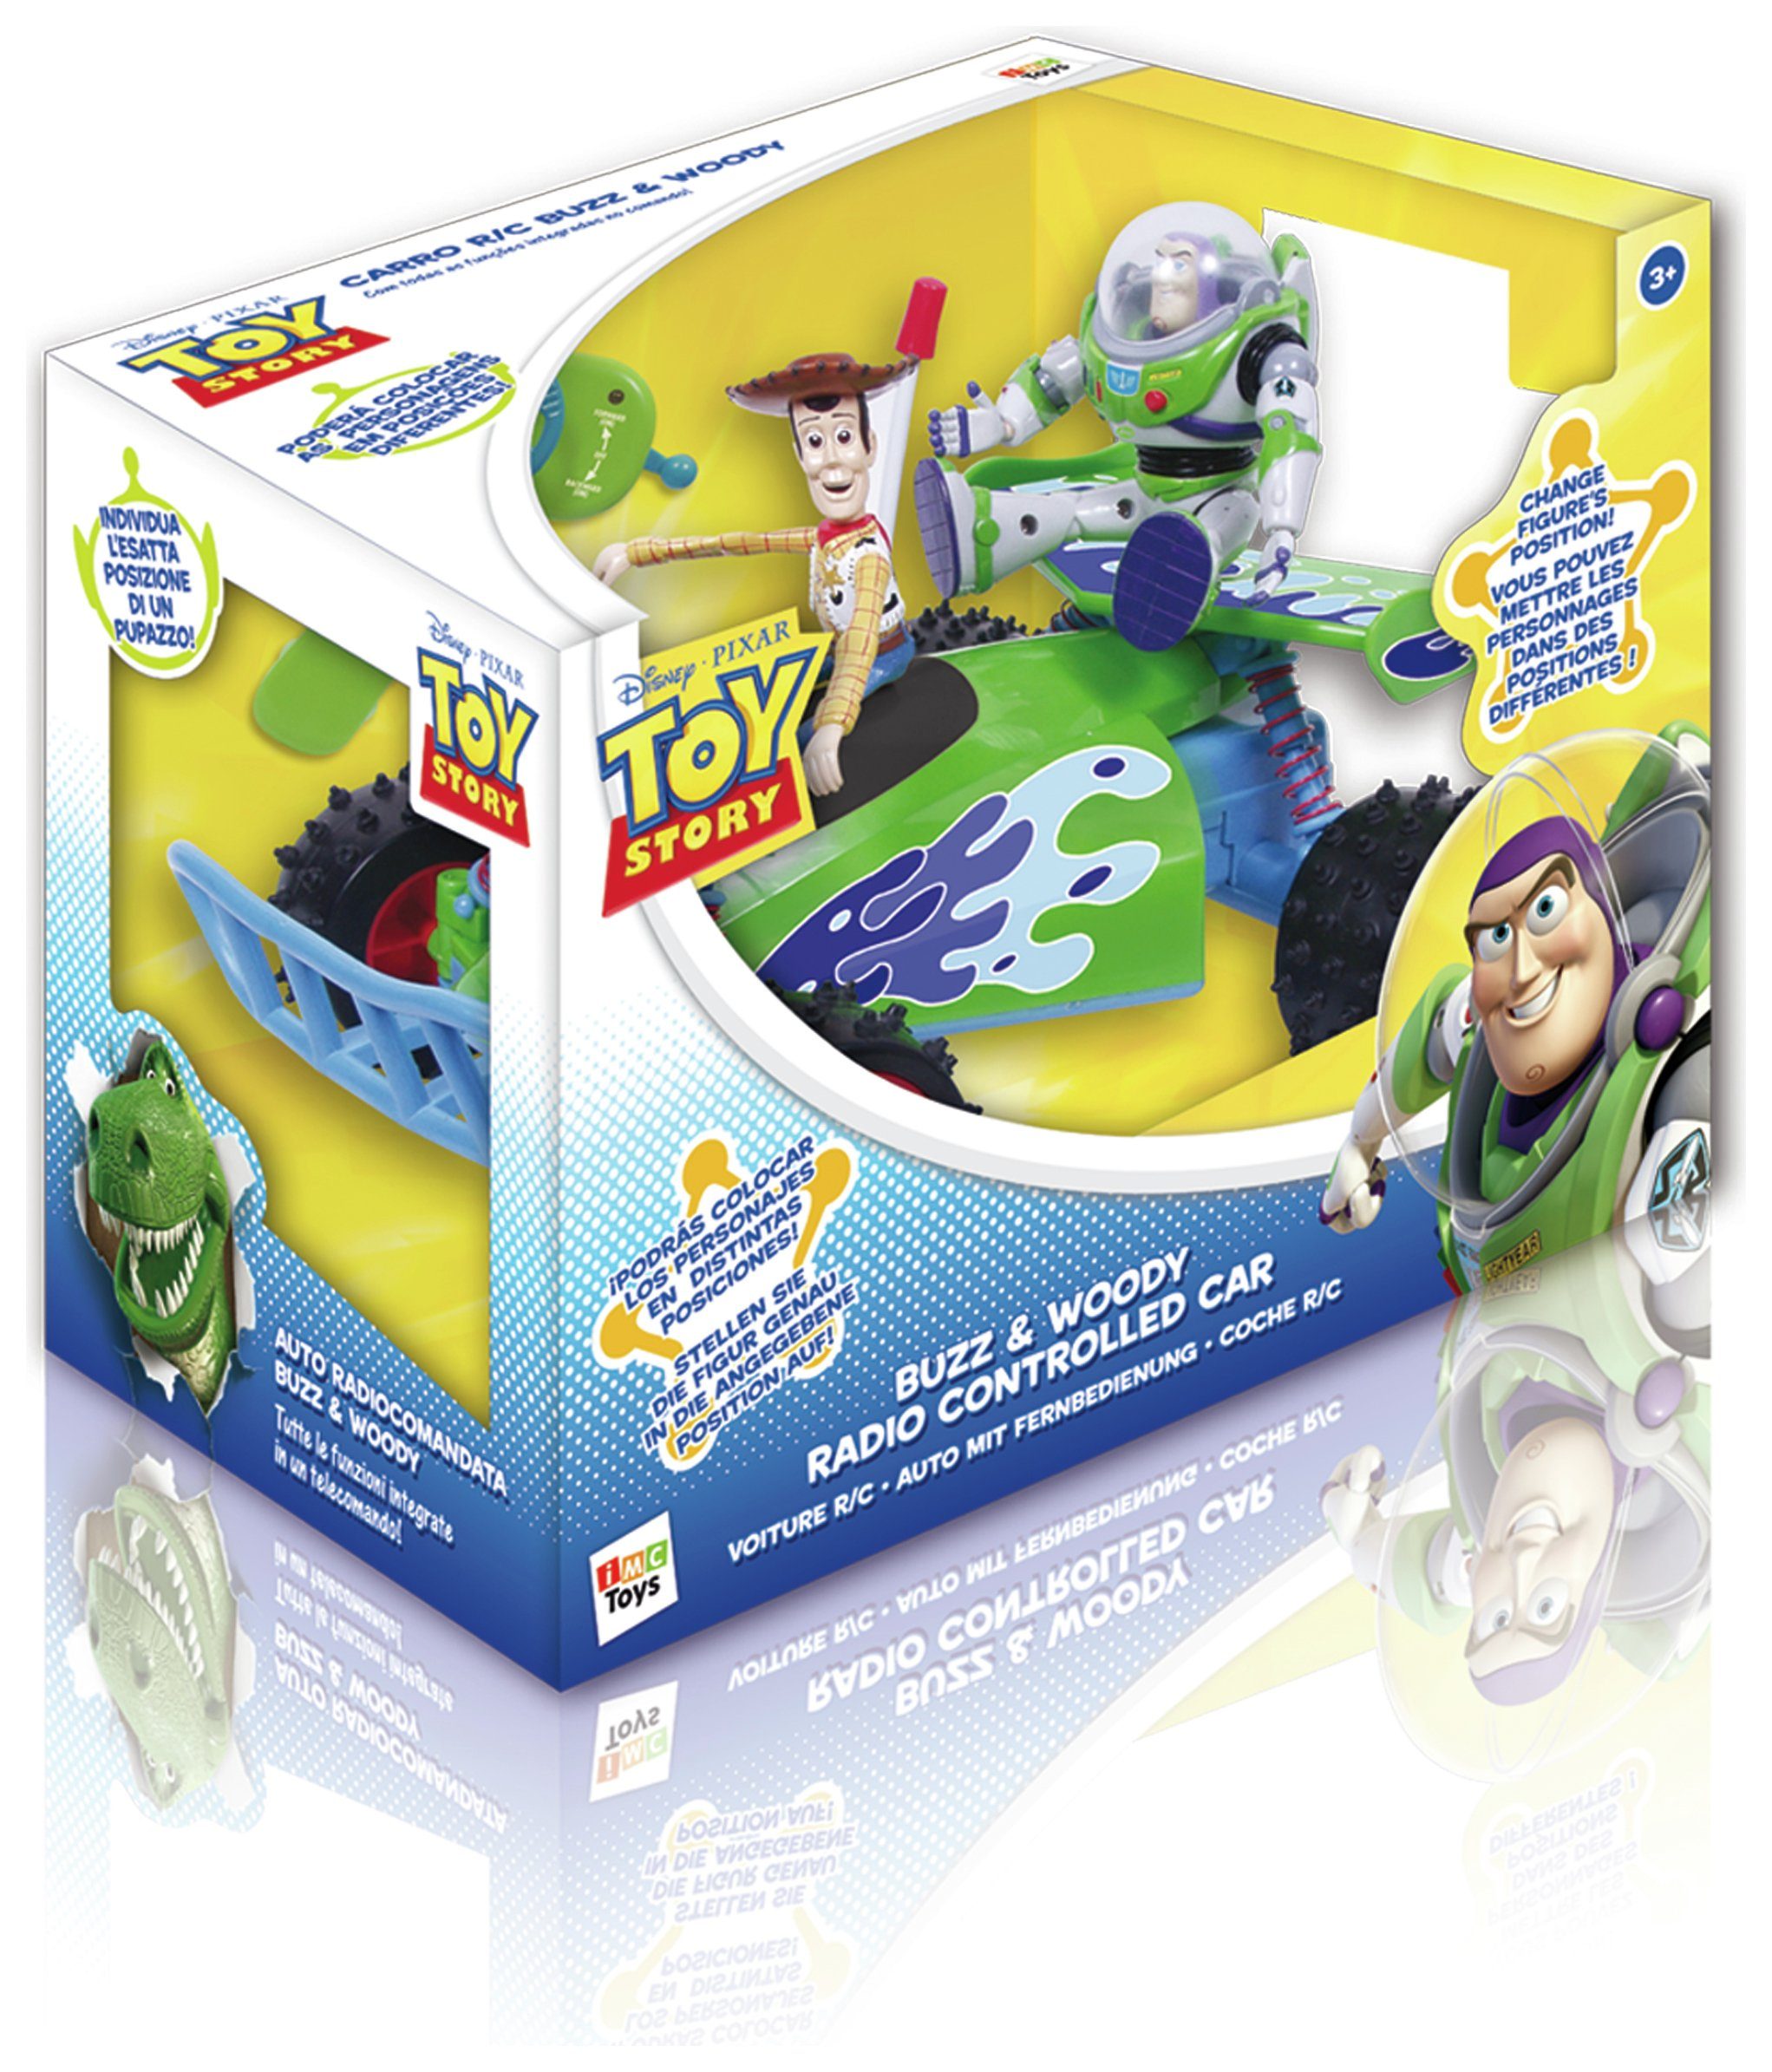 Image of Toy Story Remote Control Car.